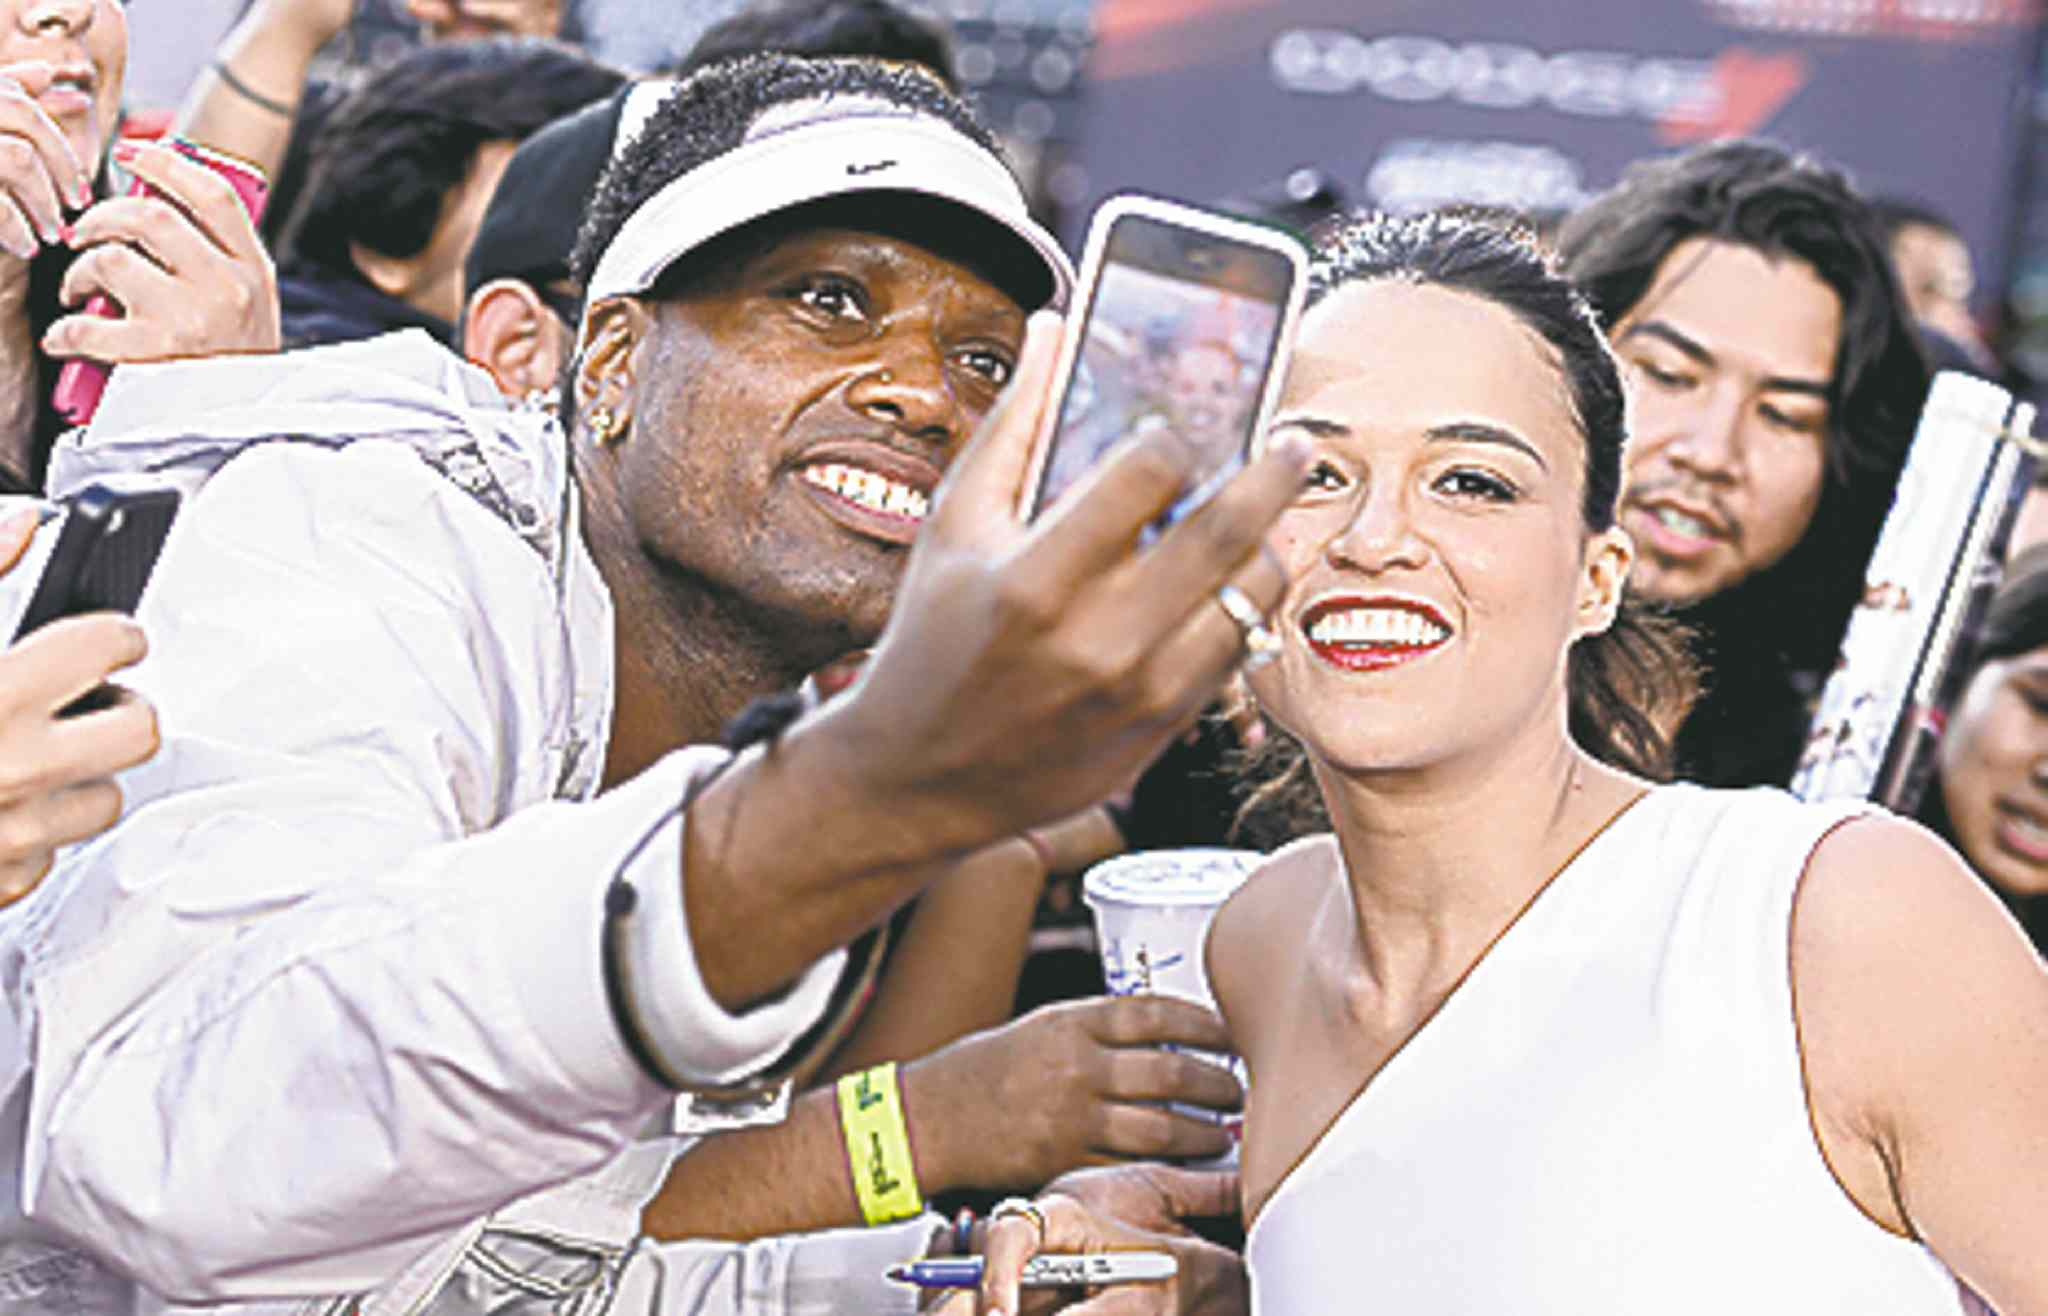 FILE - This May 21, 2013 file photo shows actress Michelle Rodriguez posing for a photo with a fan at the LA Premiere of the